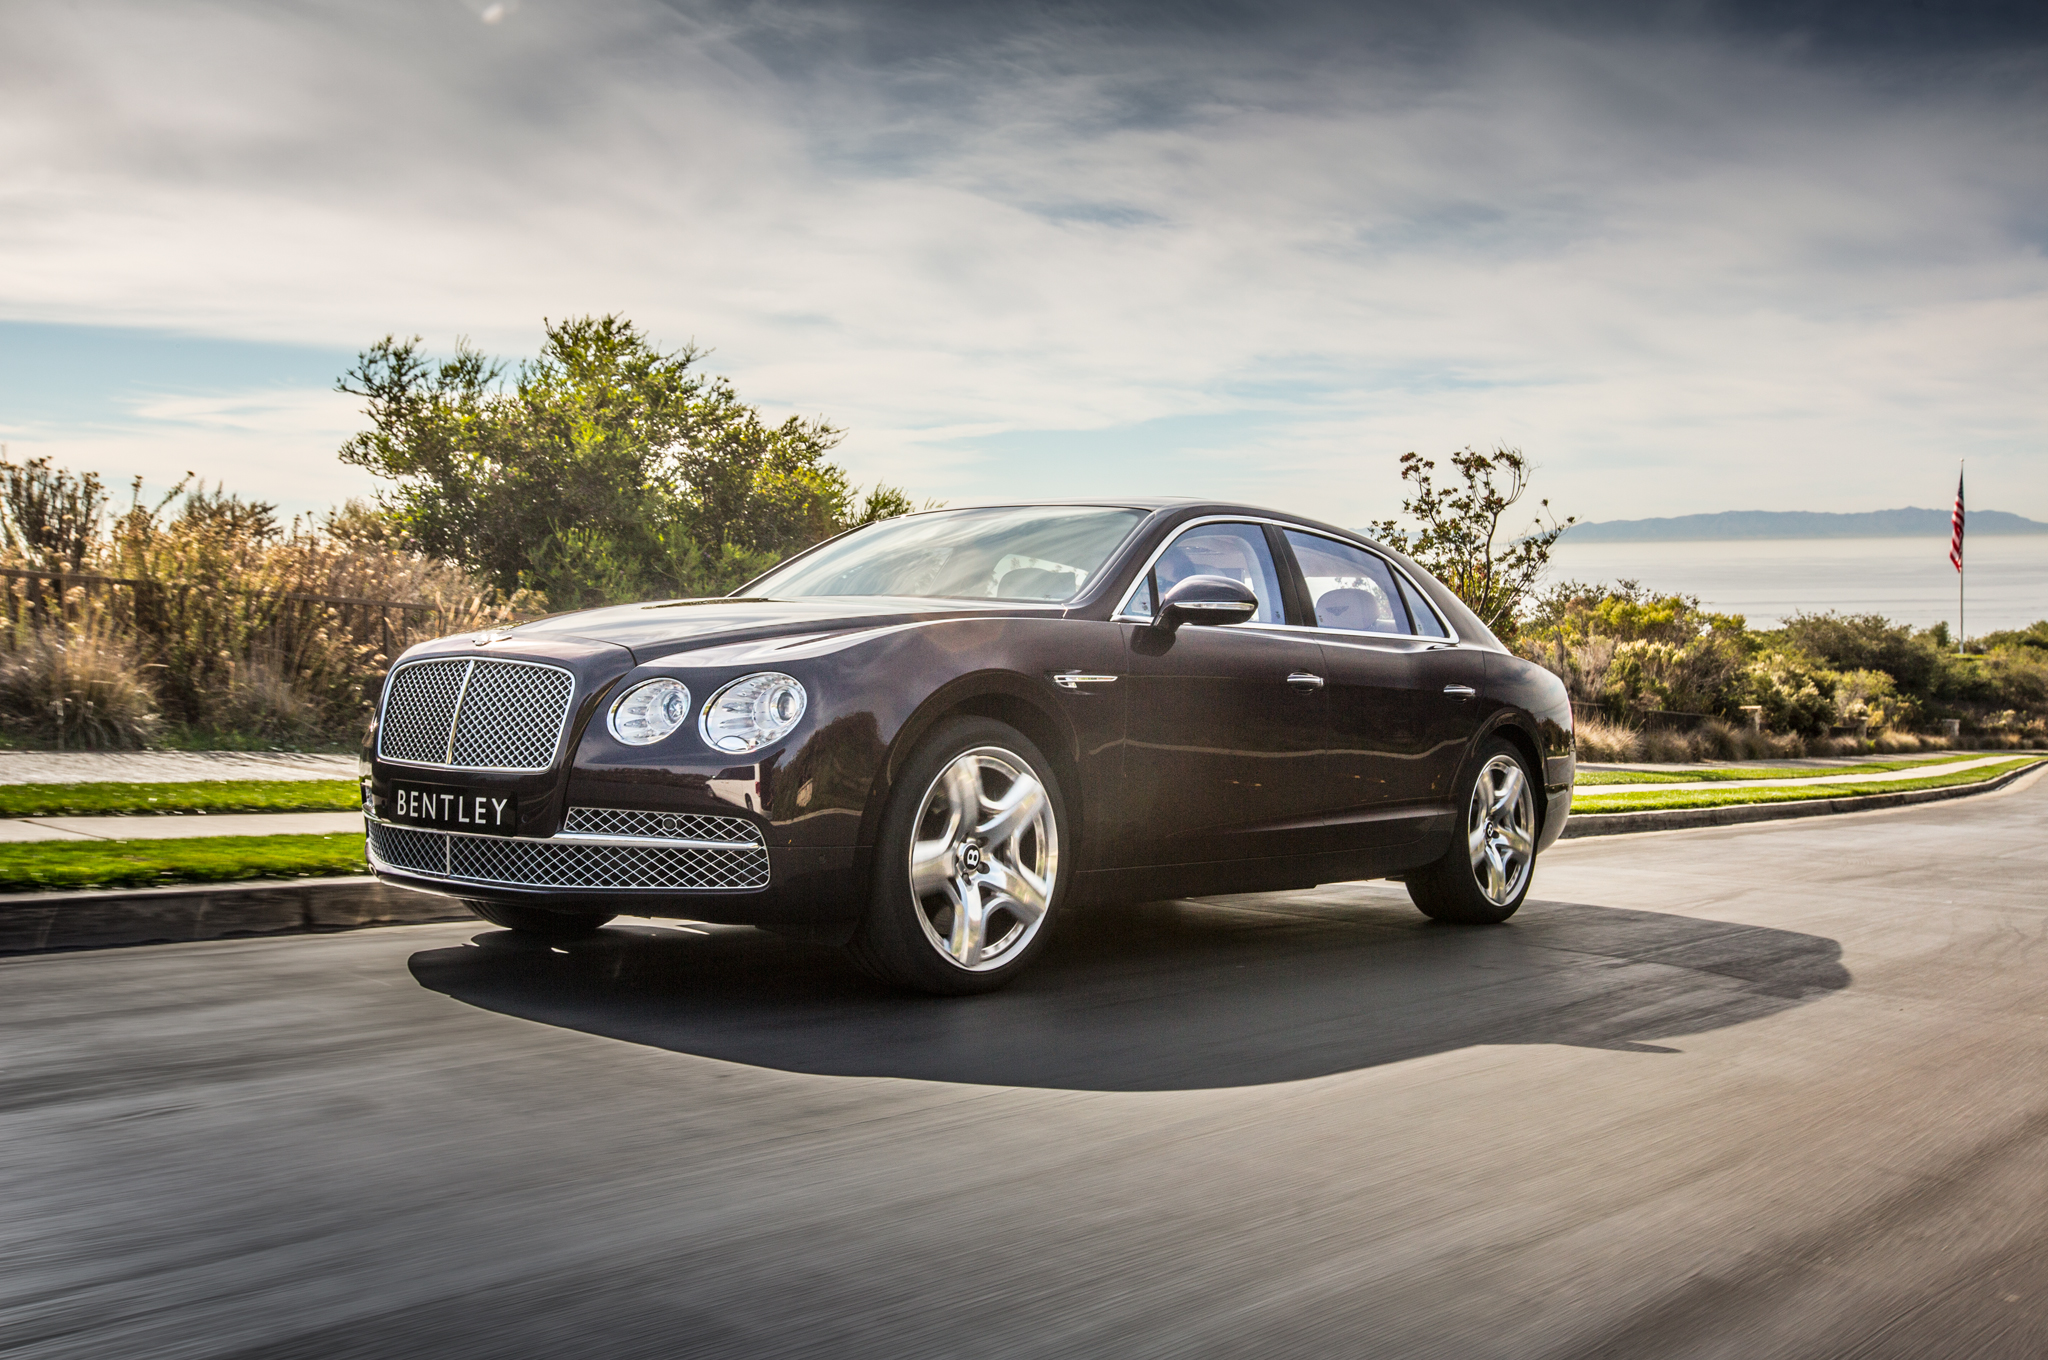 2014 Bentley Flying Spur #15